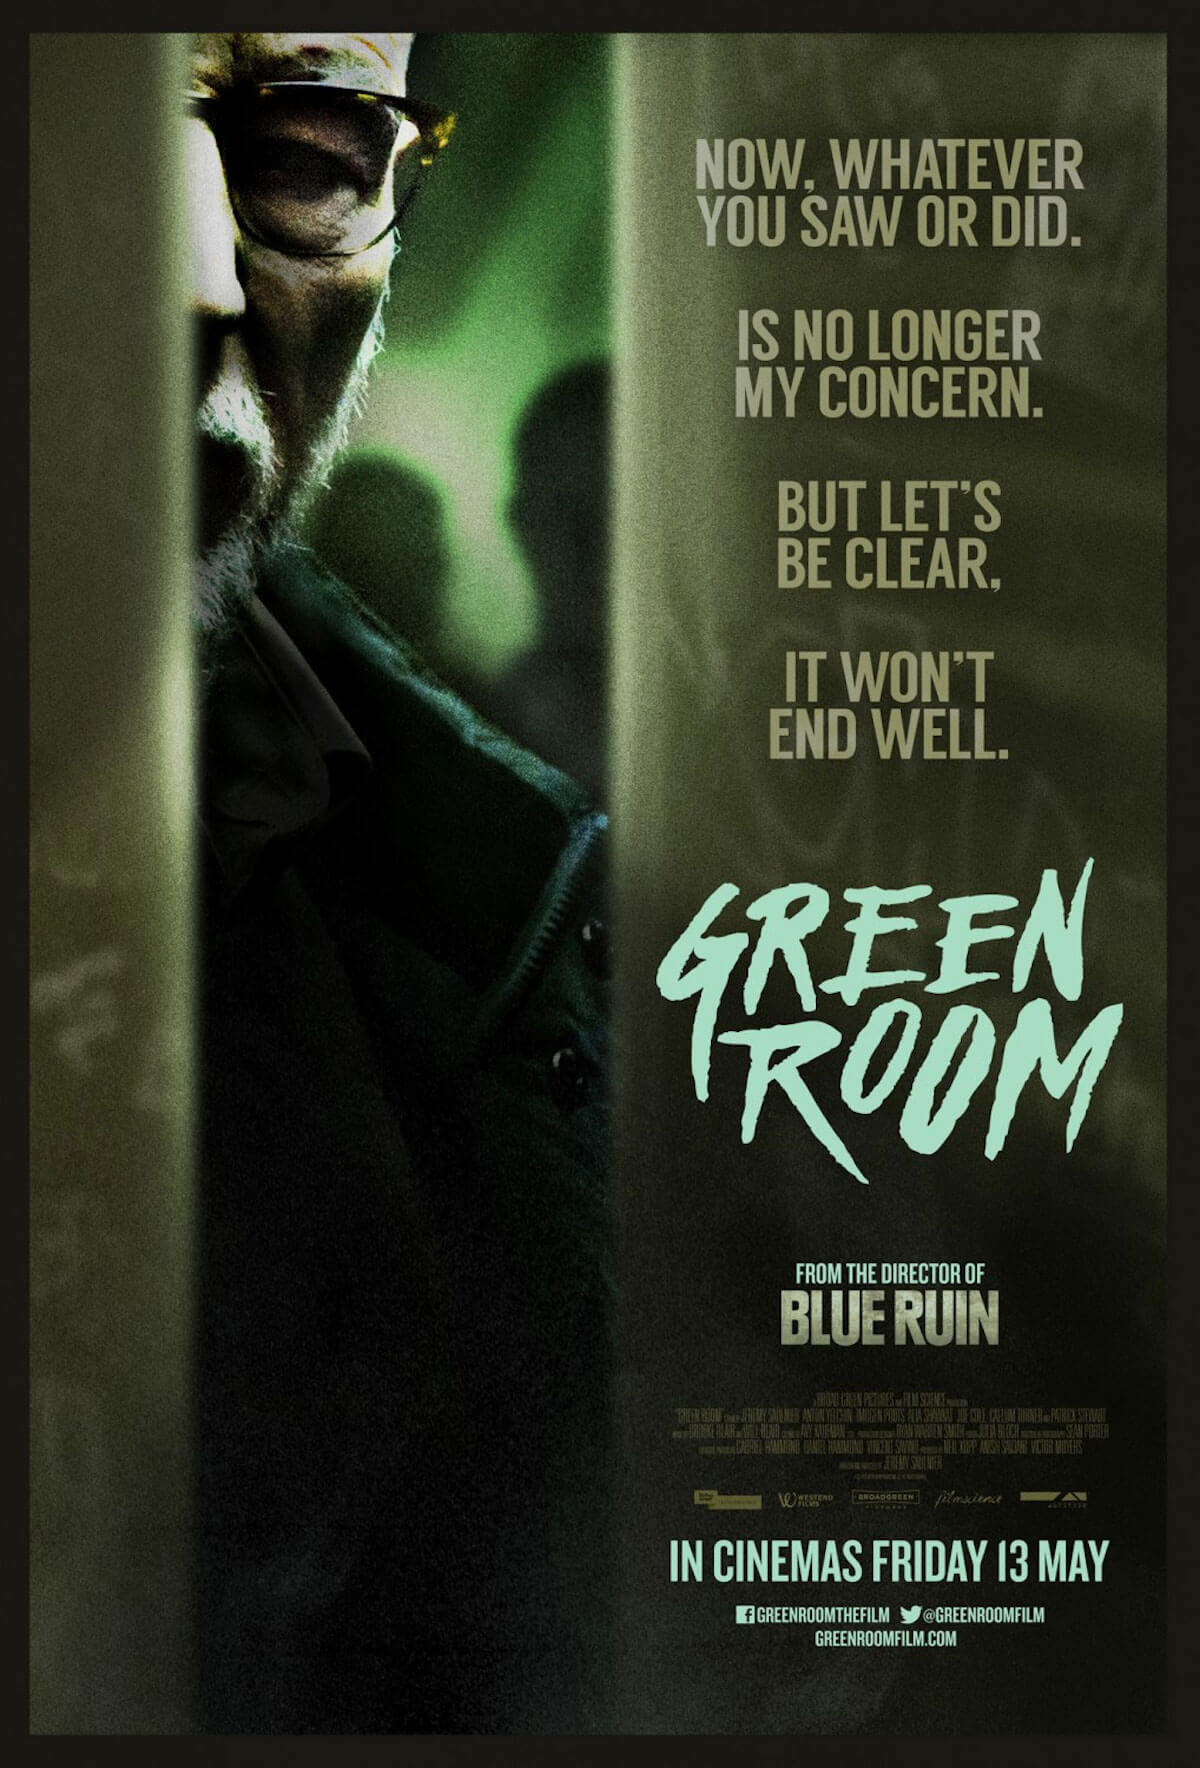 Green room poster1